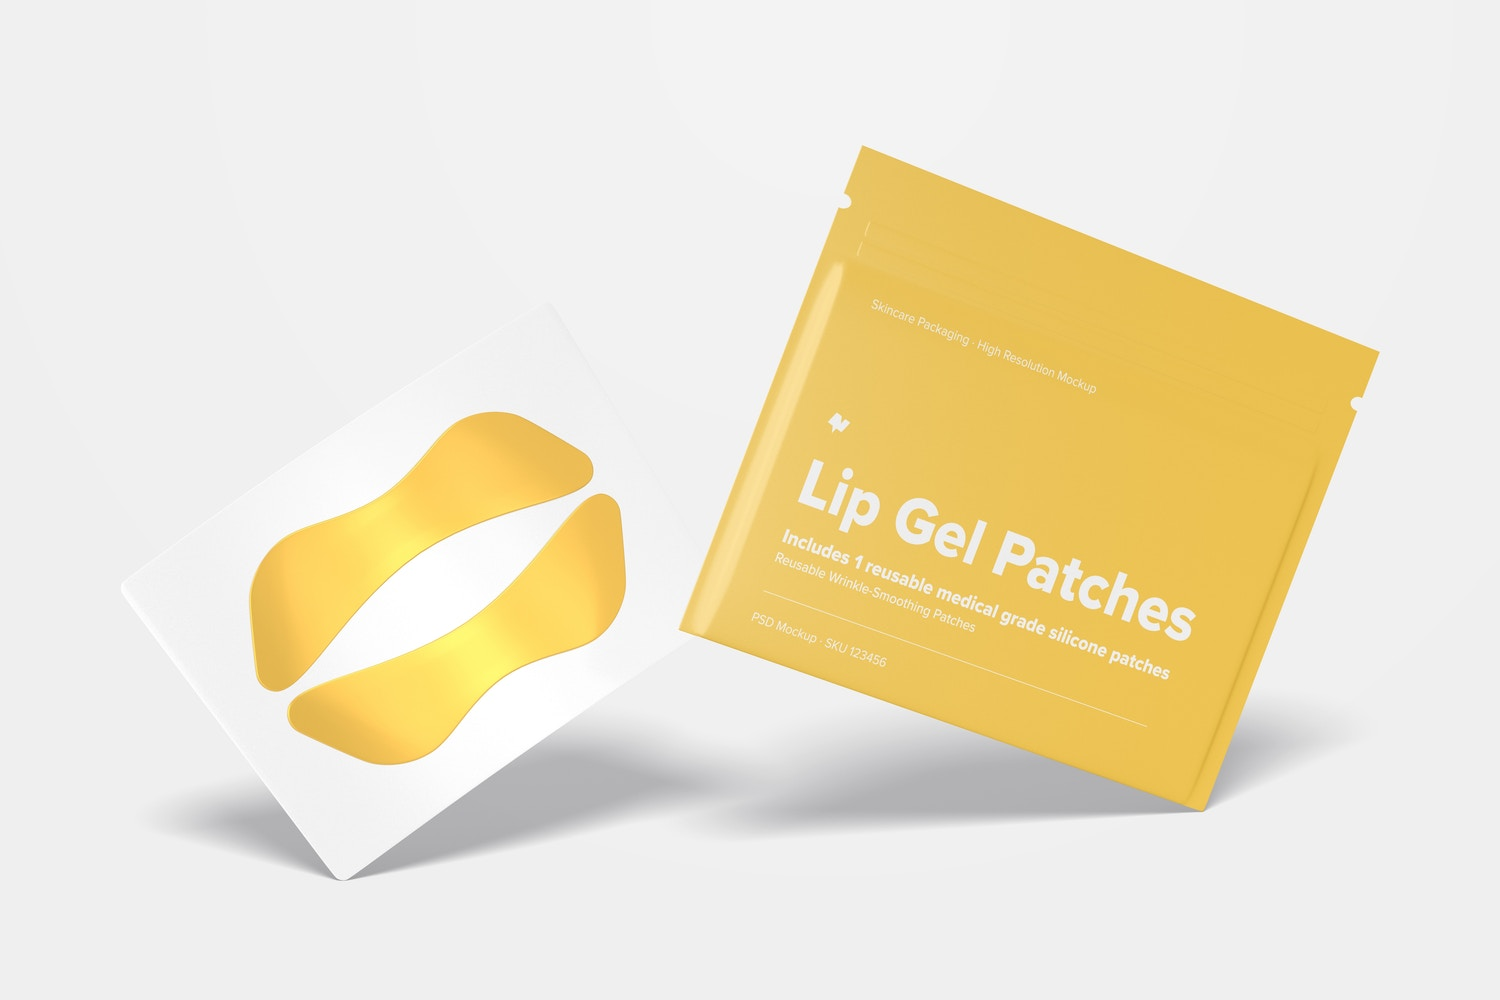 Lip Gel Patches Packaging Mockup, Leaned